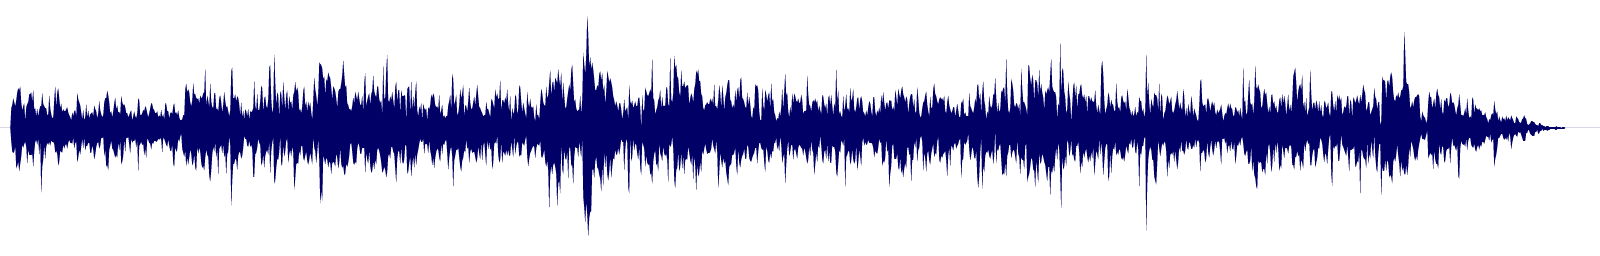 waveform of track #93398